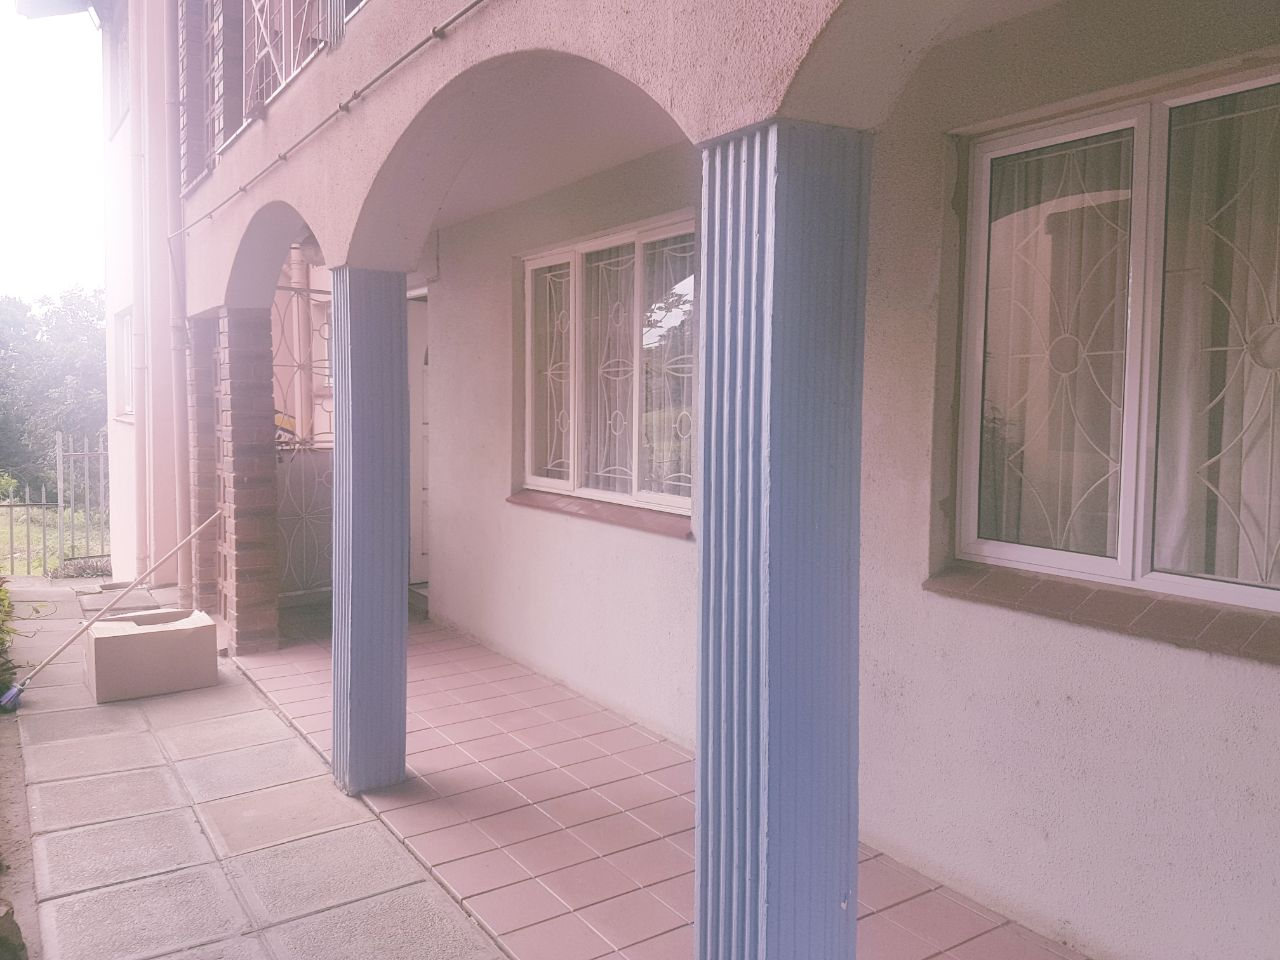 2 B/RM SECURE APARTMENT- ZANADU- BRINDHAVEN VERULUM, R750 000 AVAIL IMMEDIATELY